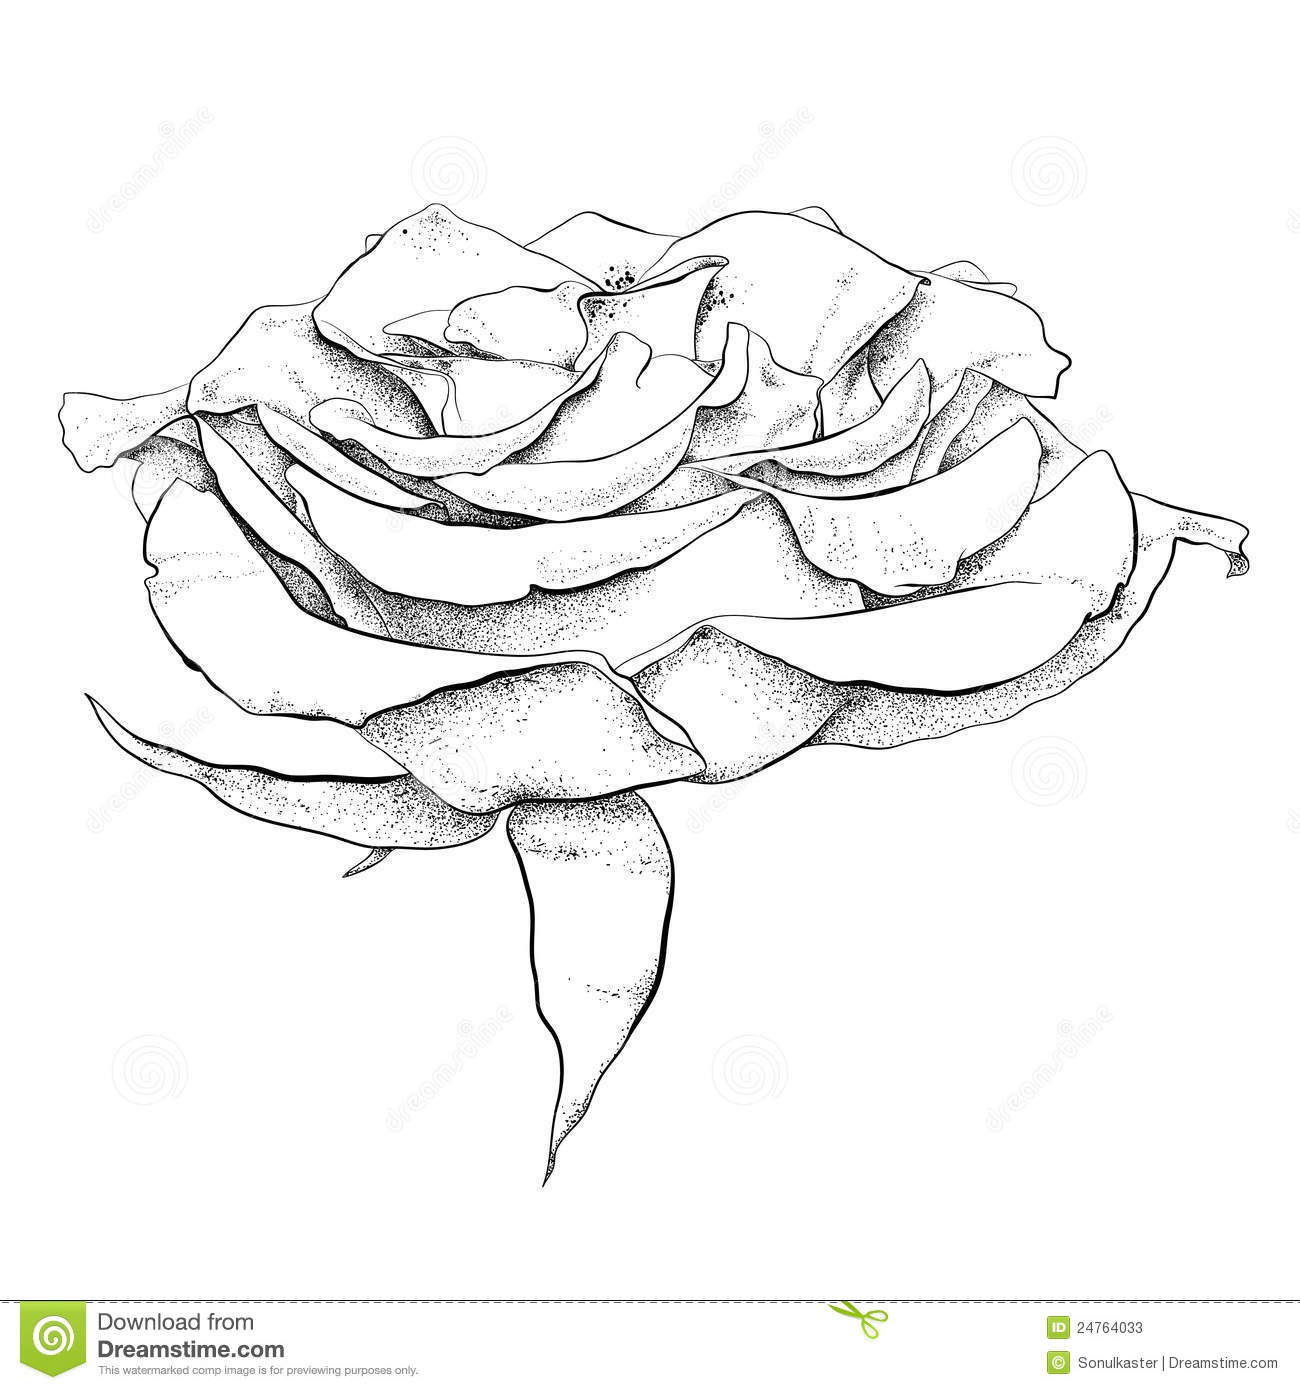 httpthumbsdreamstimecomzhighly detailed hand drawn rose